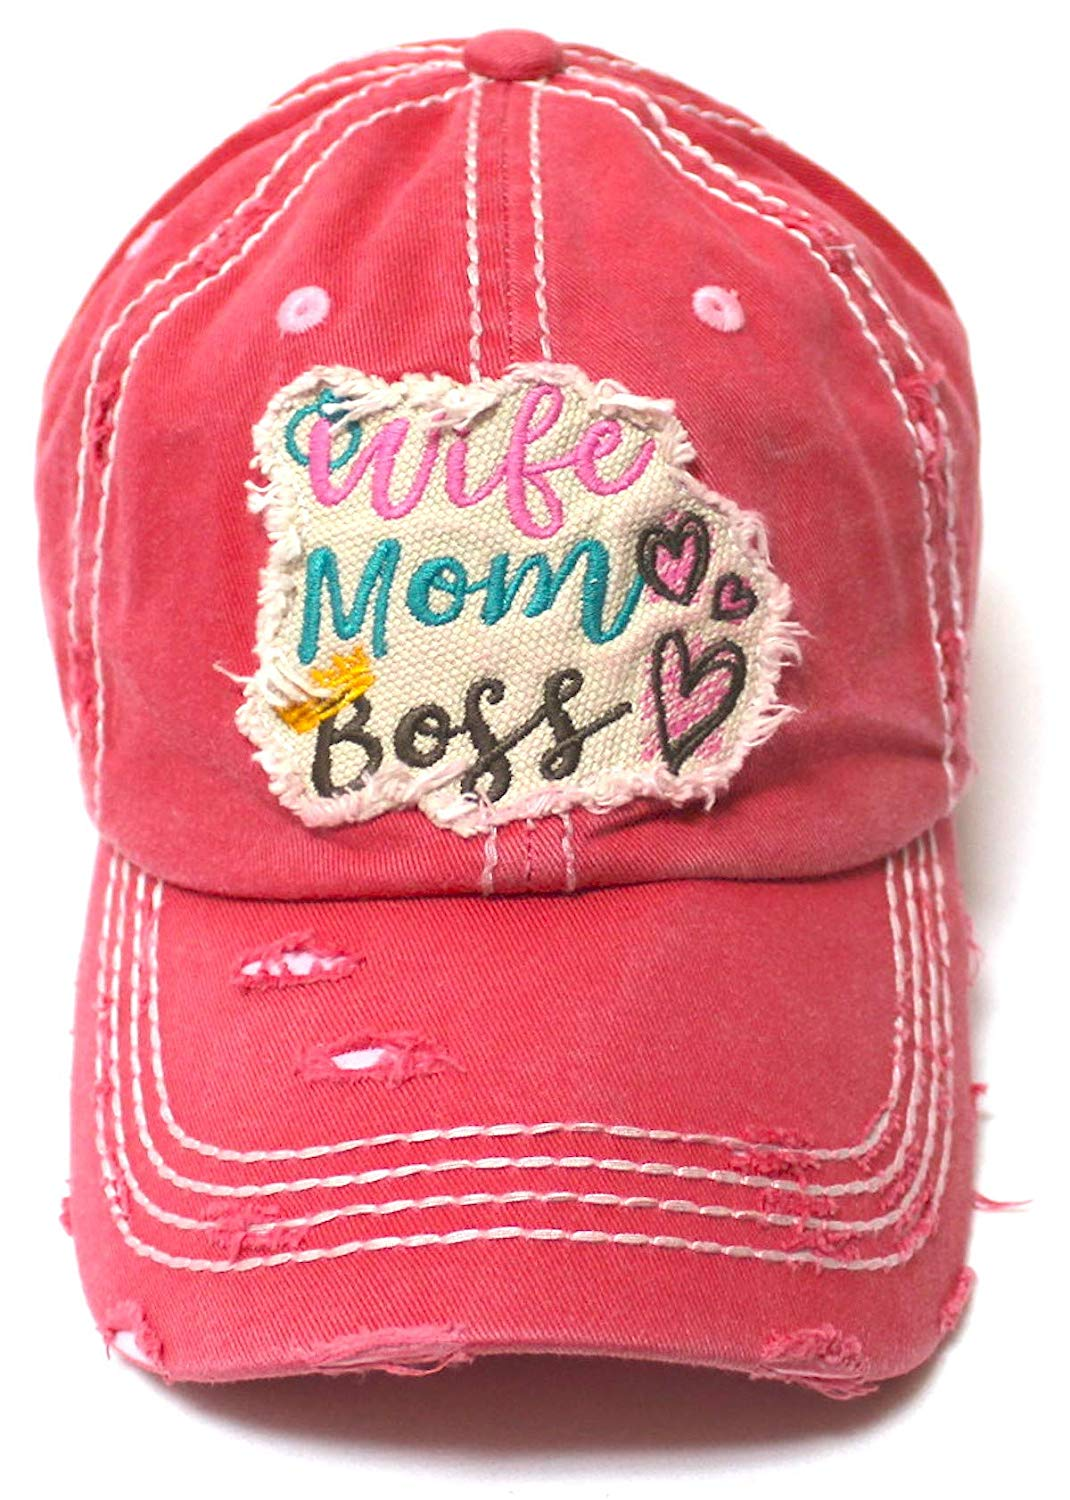 Women's Ballcap Wife, Mom, Boss Patch Embroidery Vintage Hat, Rose Pink - Caps 'N Vintage